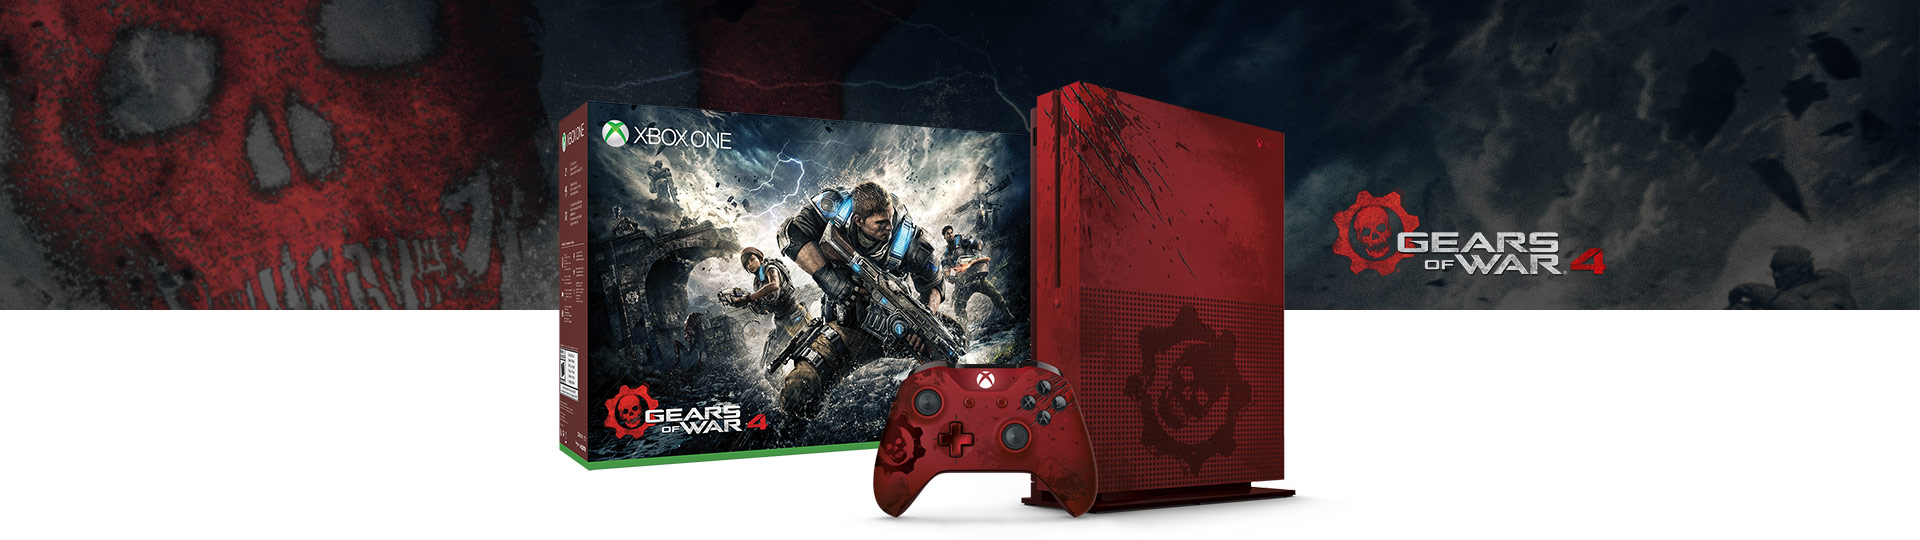 2tb gears of war 4 xbox one s limited edition bundle review – the.